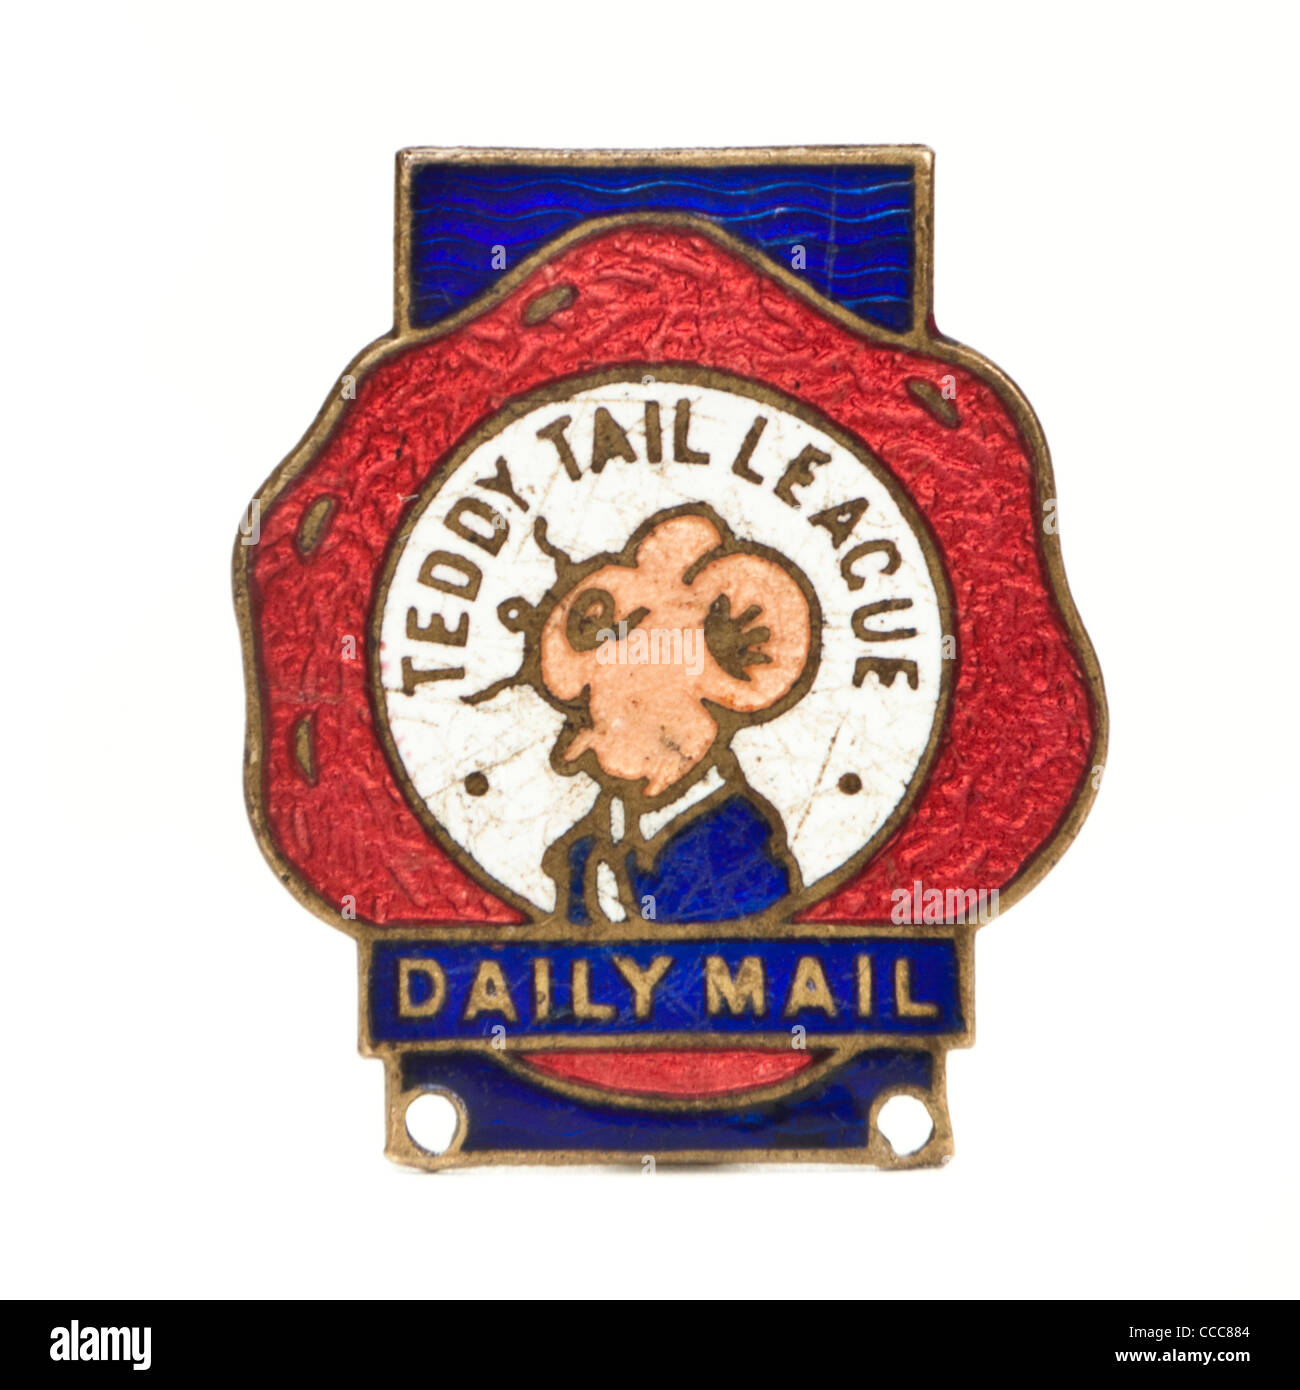 """1930's Daily Mail promotional """"Teddy Tail League"""" enamel badge by J. Gaunt of London Stock Photo"""